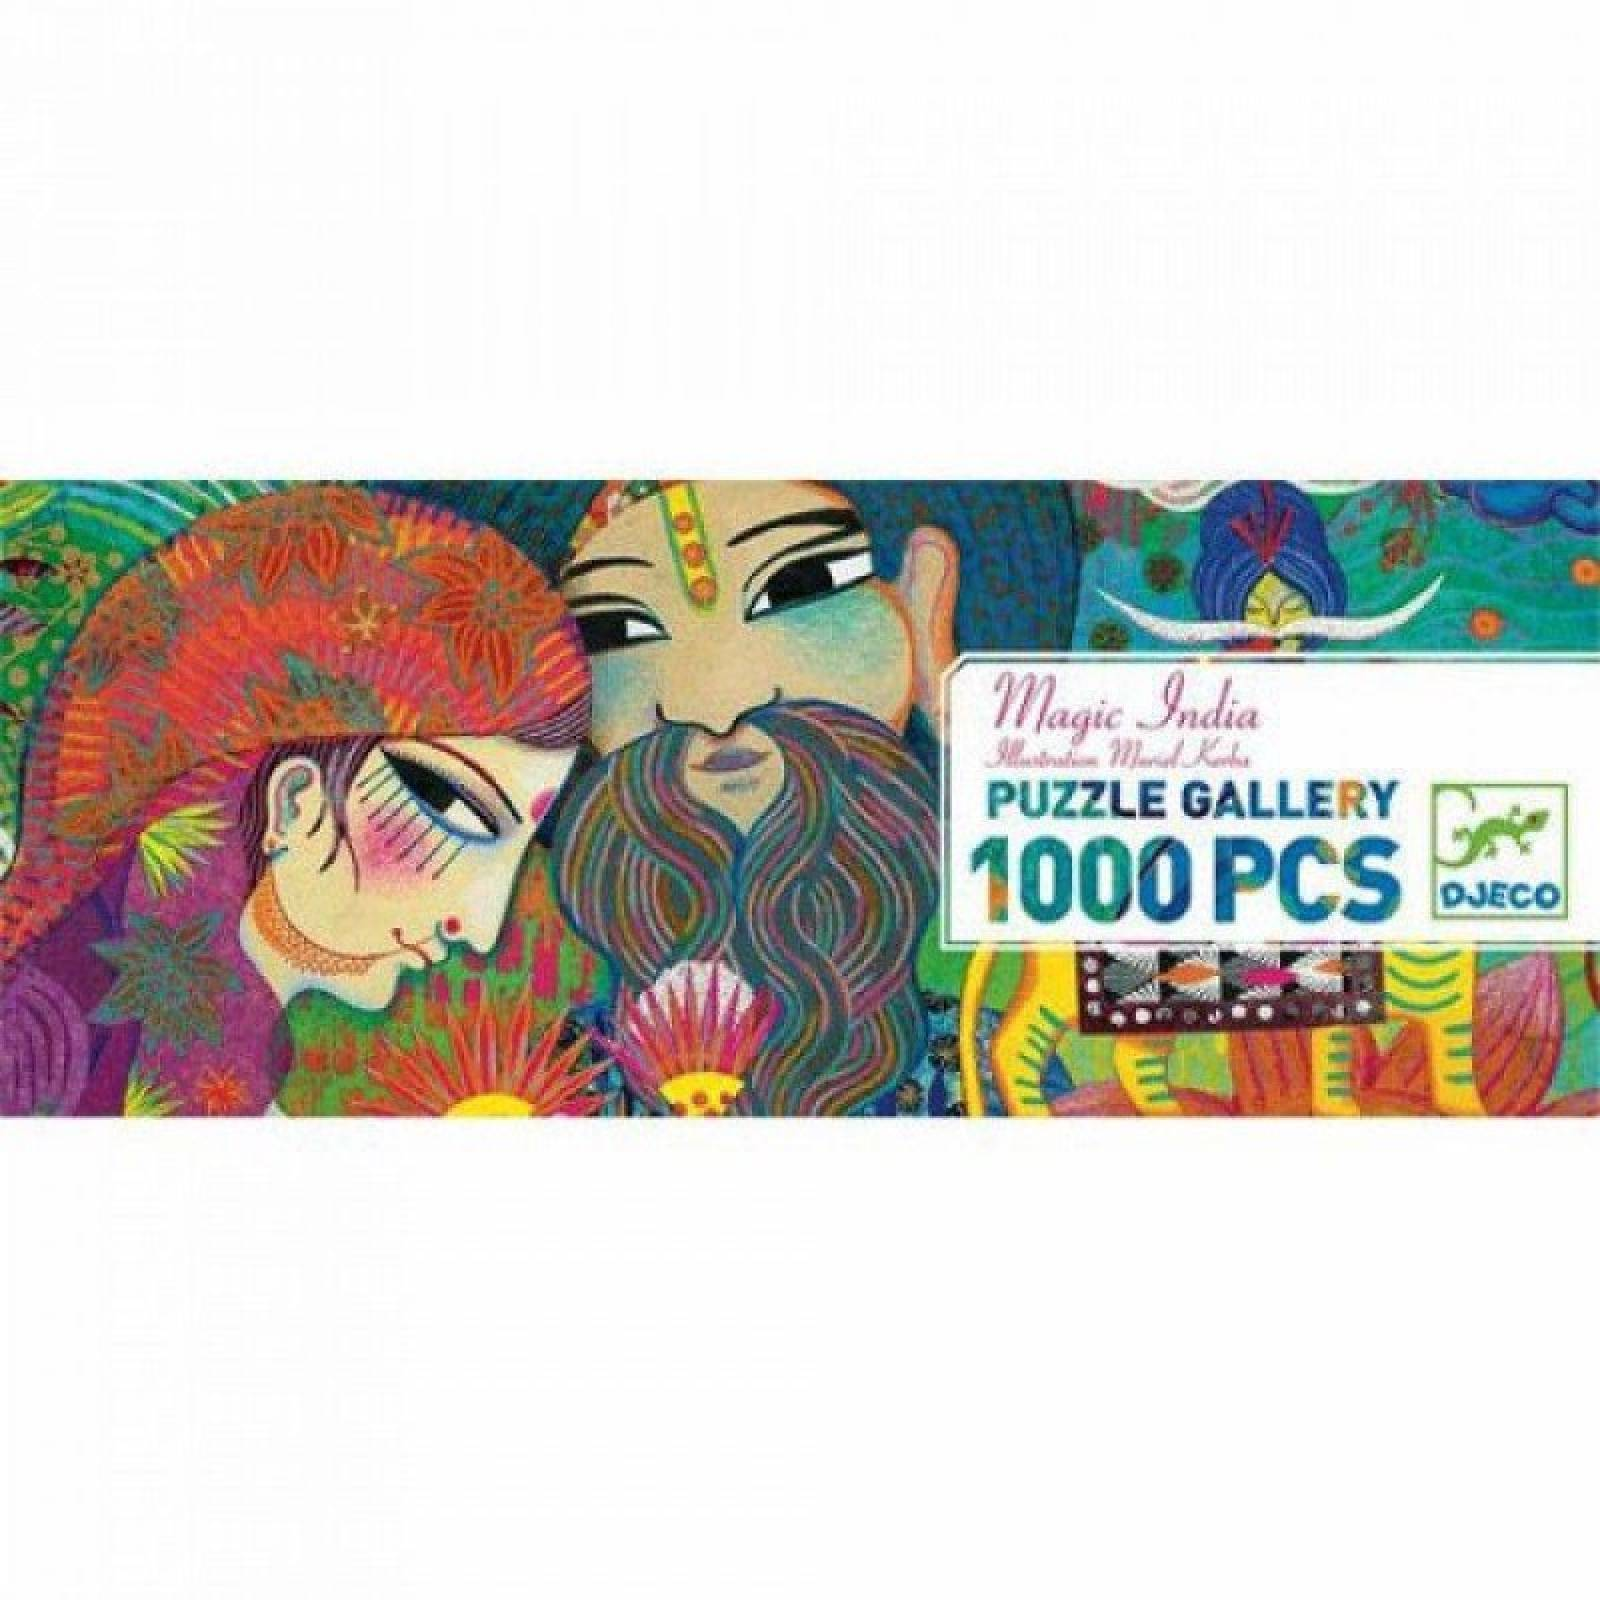 Magic India 1000 Piece Puzzle By Djeco 9+ thumbnails